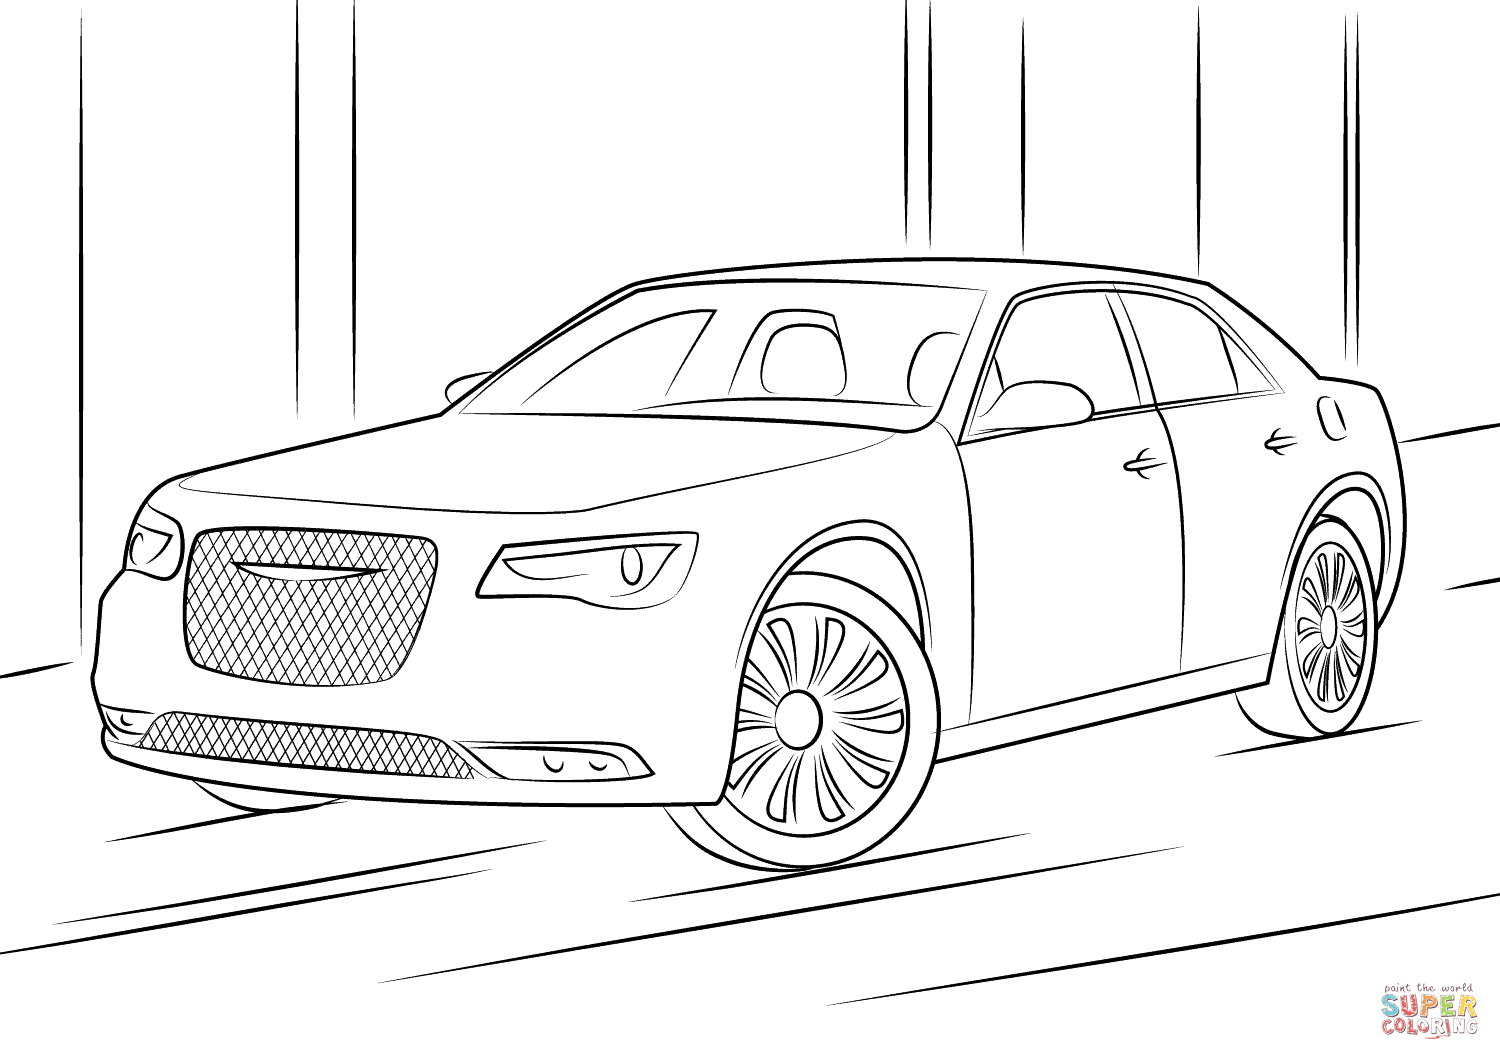 Chrysler 300 Coloring Page